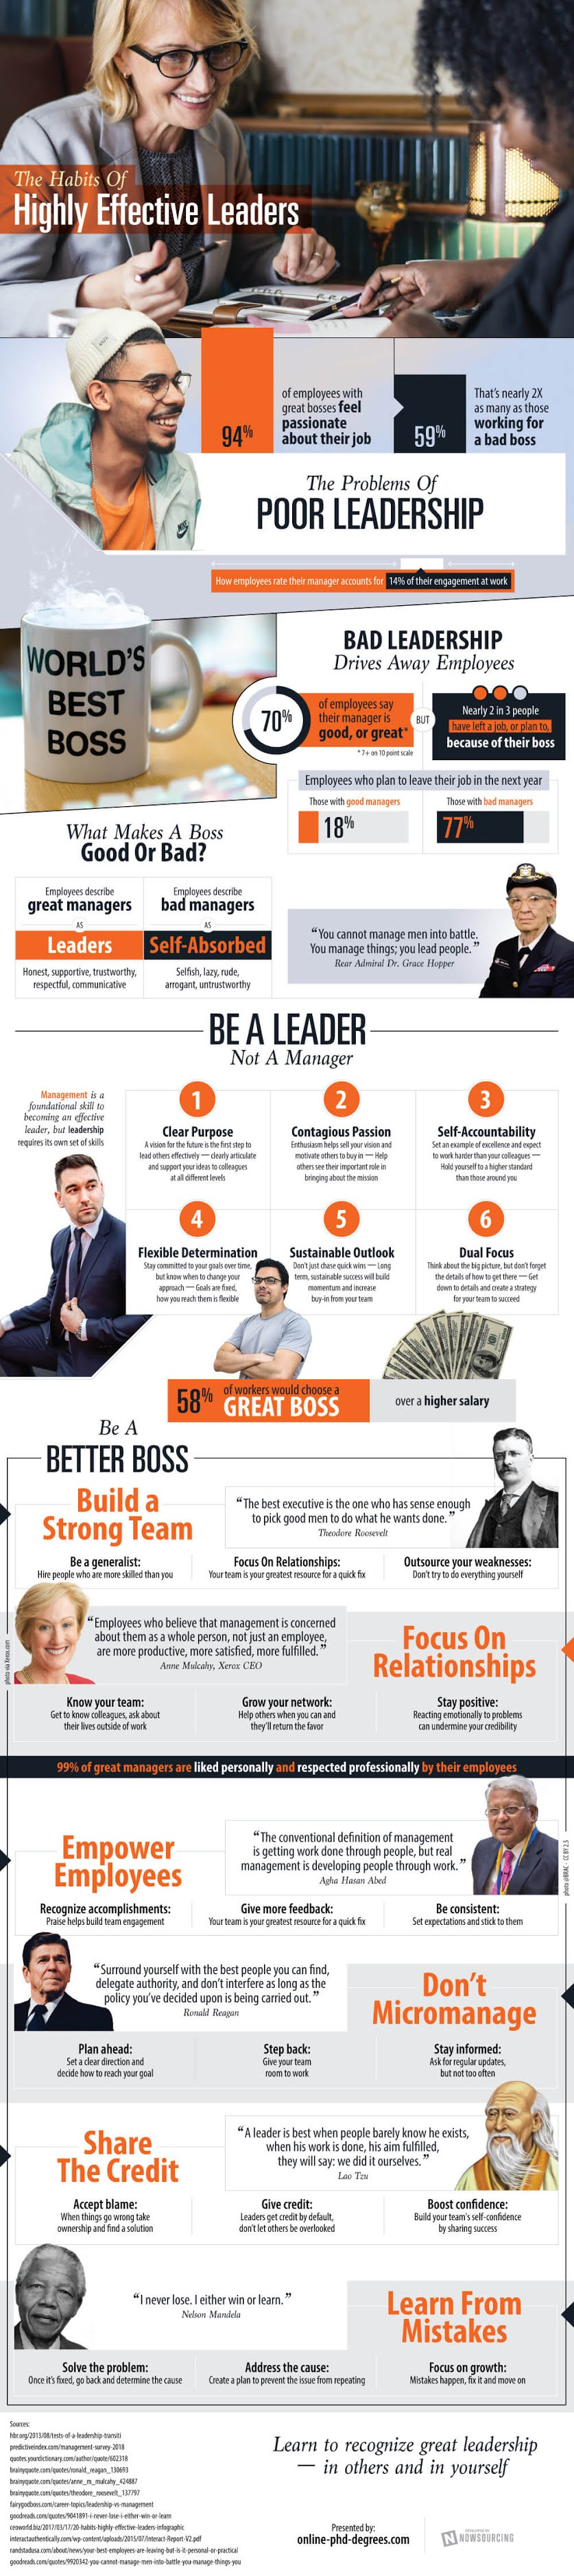 The Habits Of Highly Effective Leaders #infographic #Leadership #infographics #Effective Leaders #Leaders #Habits